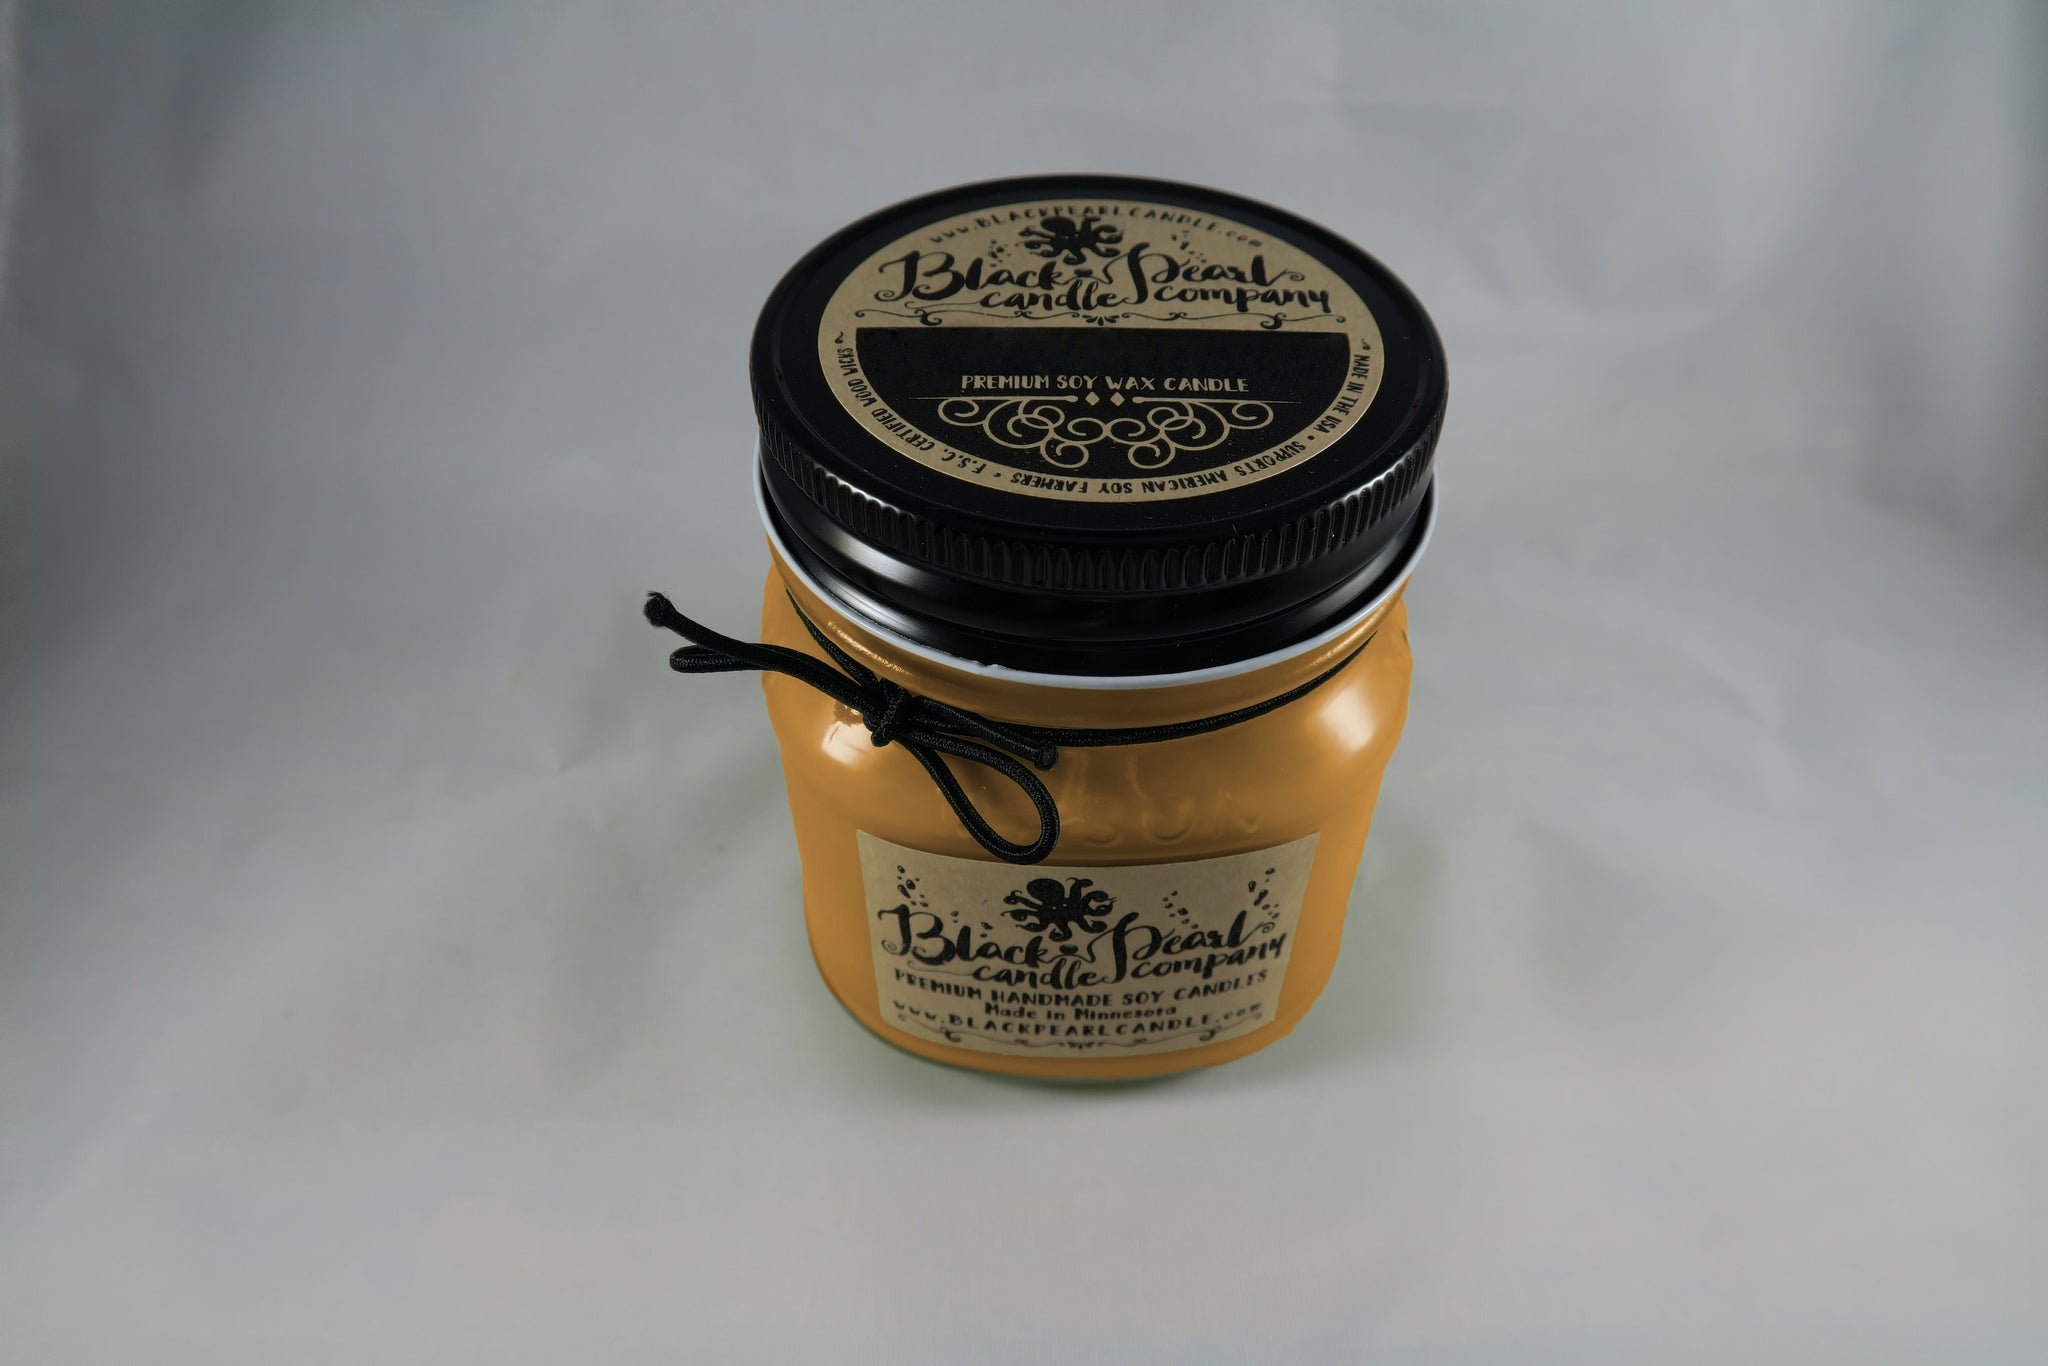 Buried Treasure - Black Pearl Candle Company